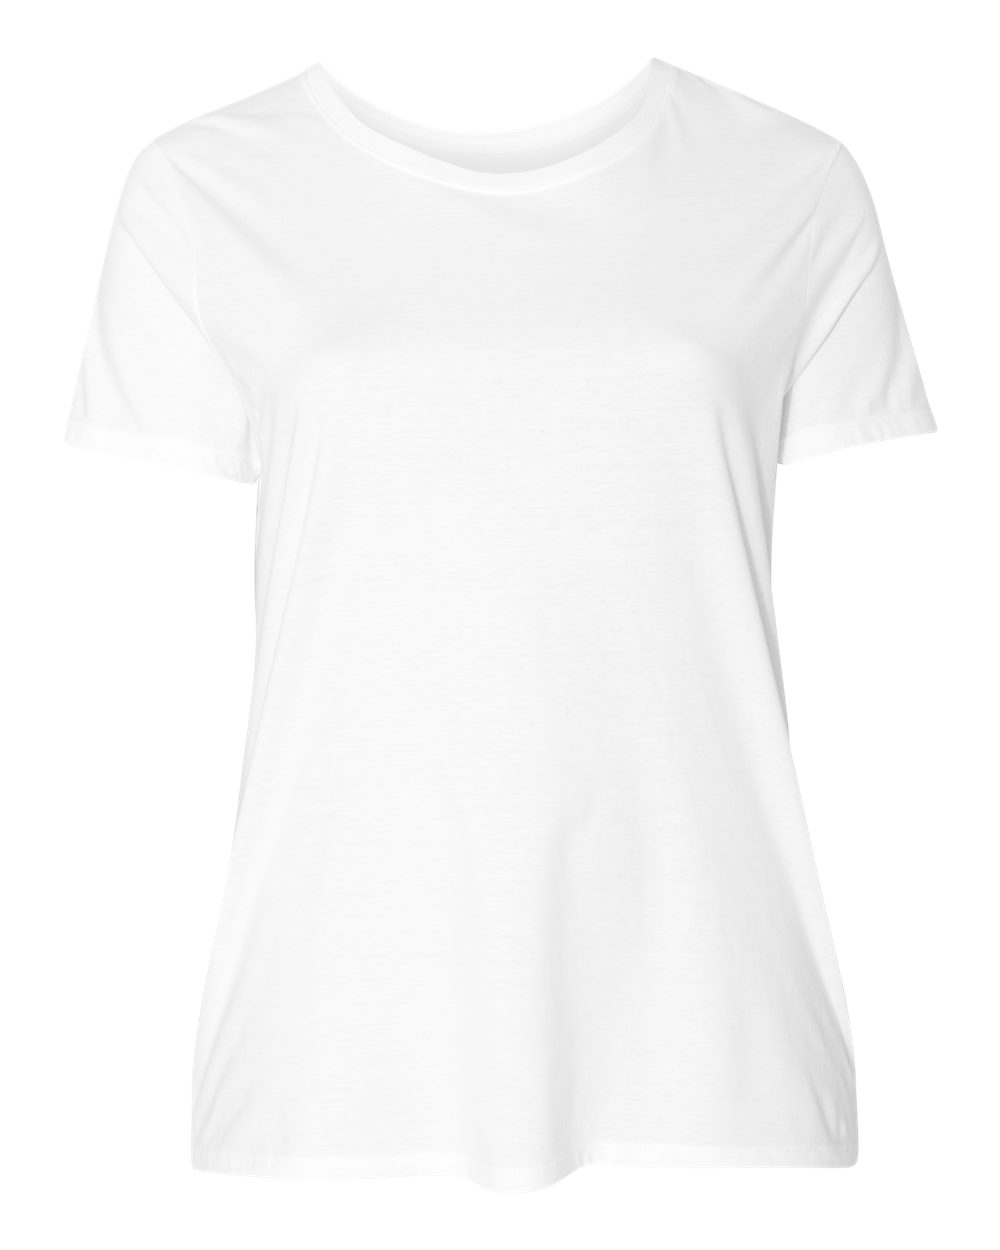 Womens Short Sleeve T-Shirt-Just My Size